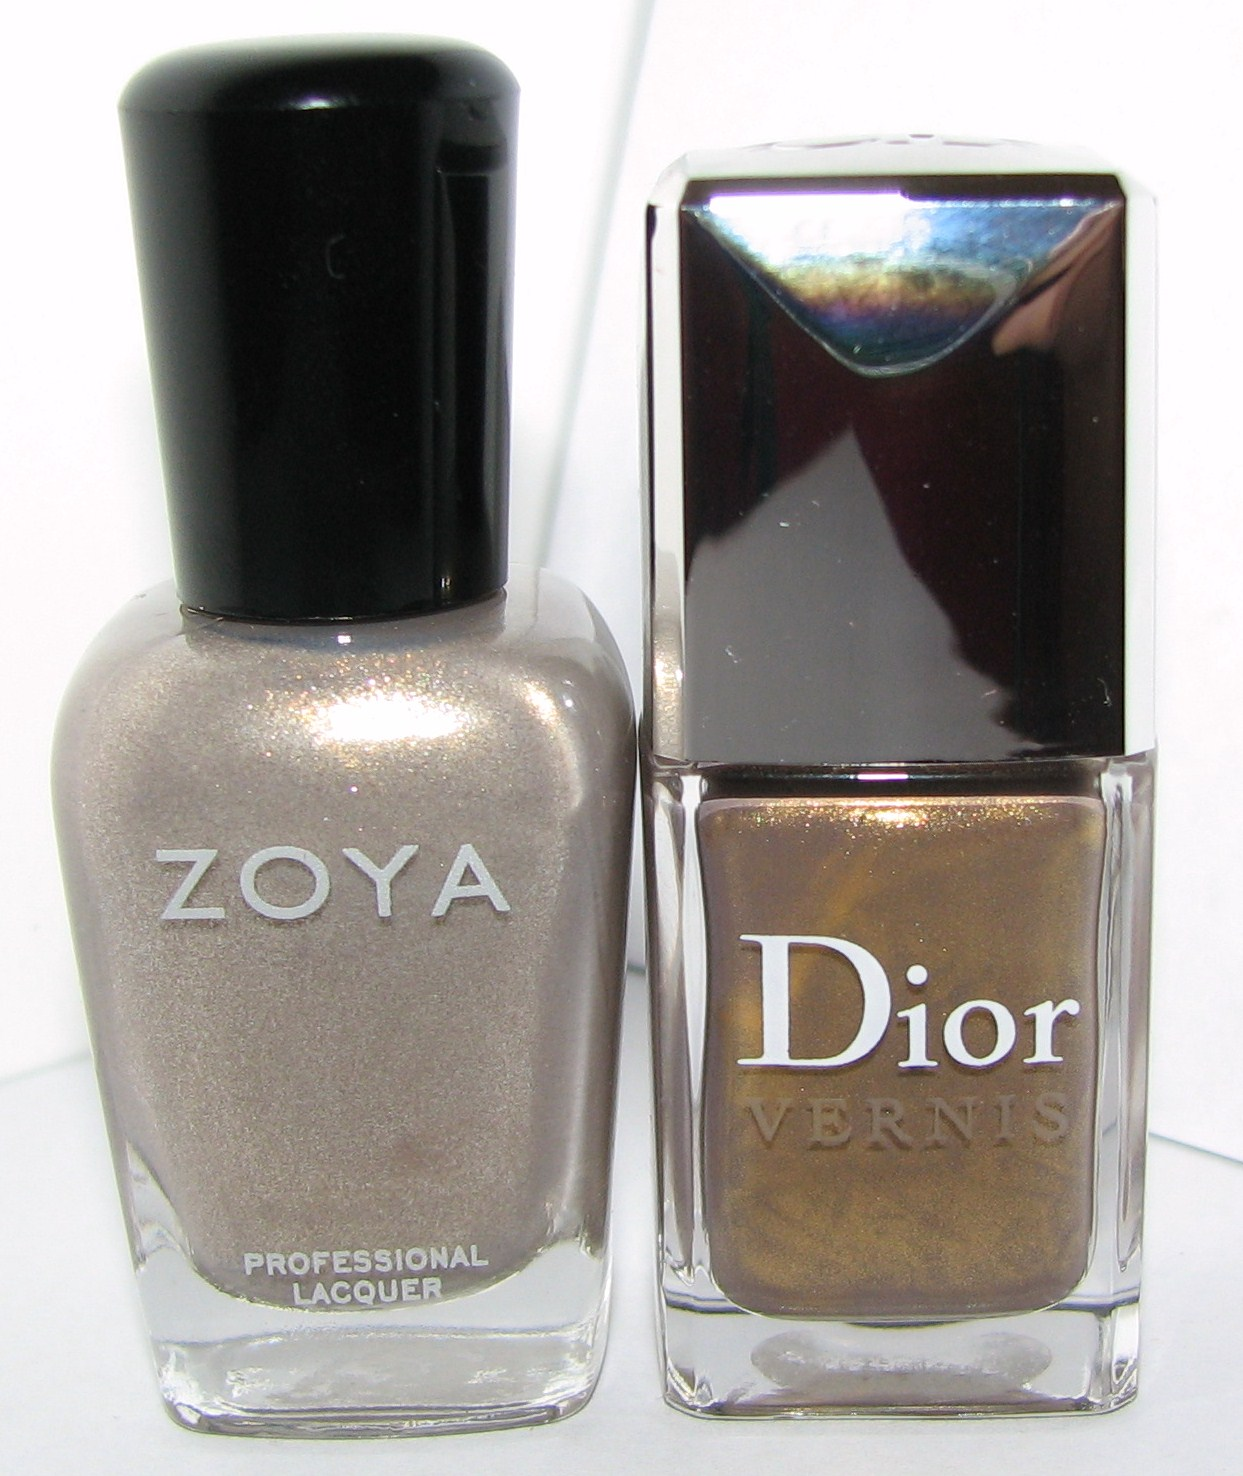 zoya jules nail polish swatches and review blushing noir. Black Bedroom Furniture Sets. Home Design Ideas